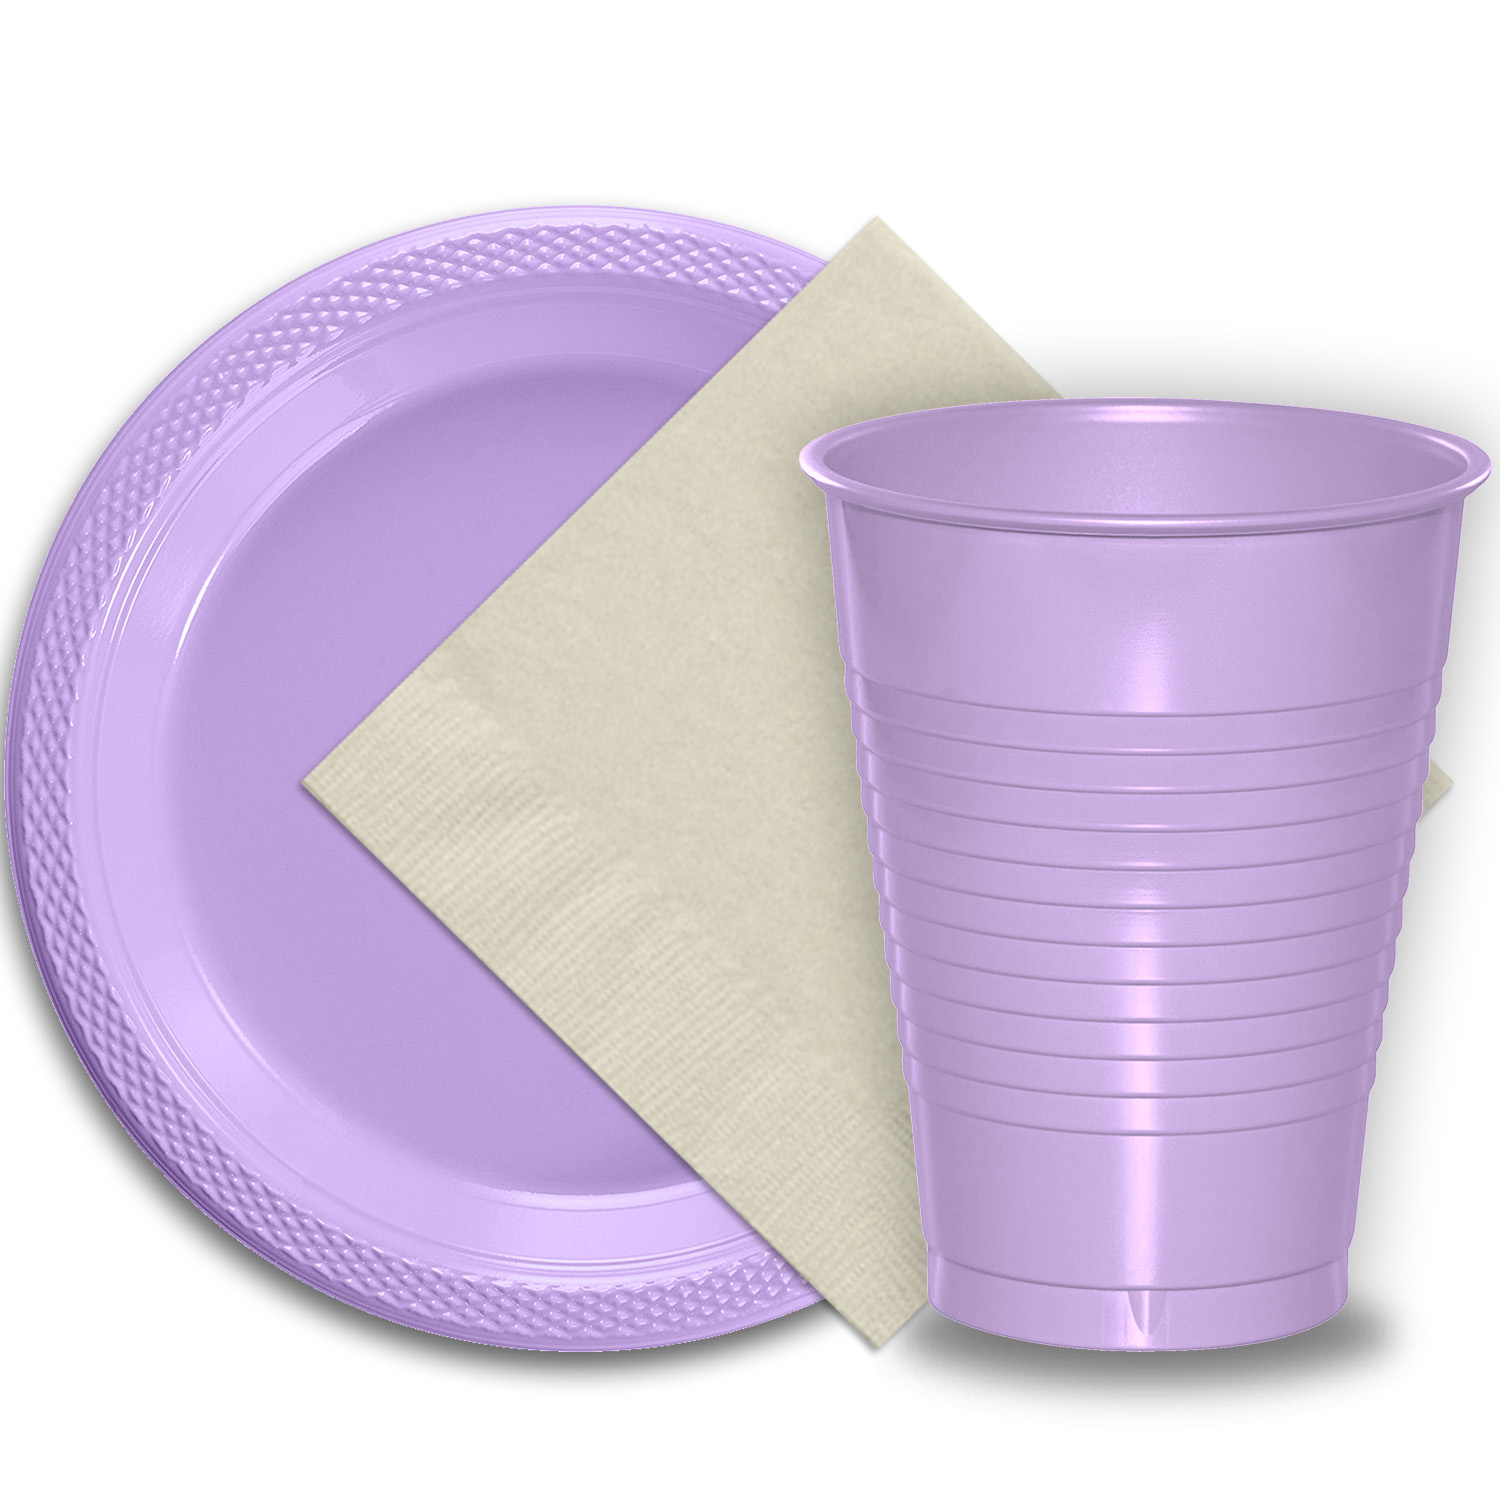 """50 Lavender Plastic Plates (9""""), 50 Lavender Plastic Cups (12 oz.), and 50 Ivory Paper Napkins, Dazzelling Colored Disposable Party Supplies Tableware Set for Fifty Guests."""